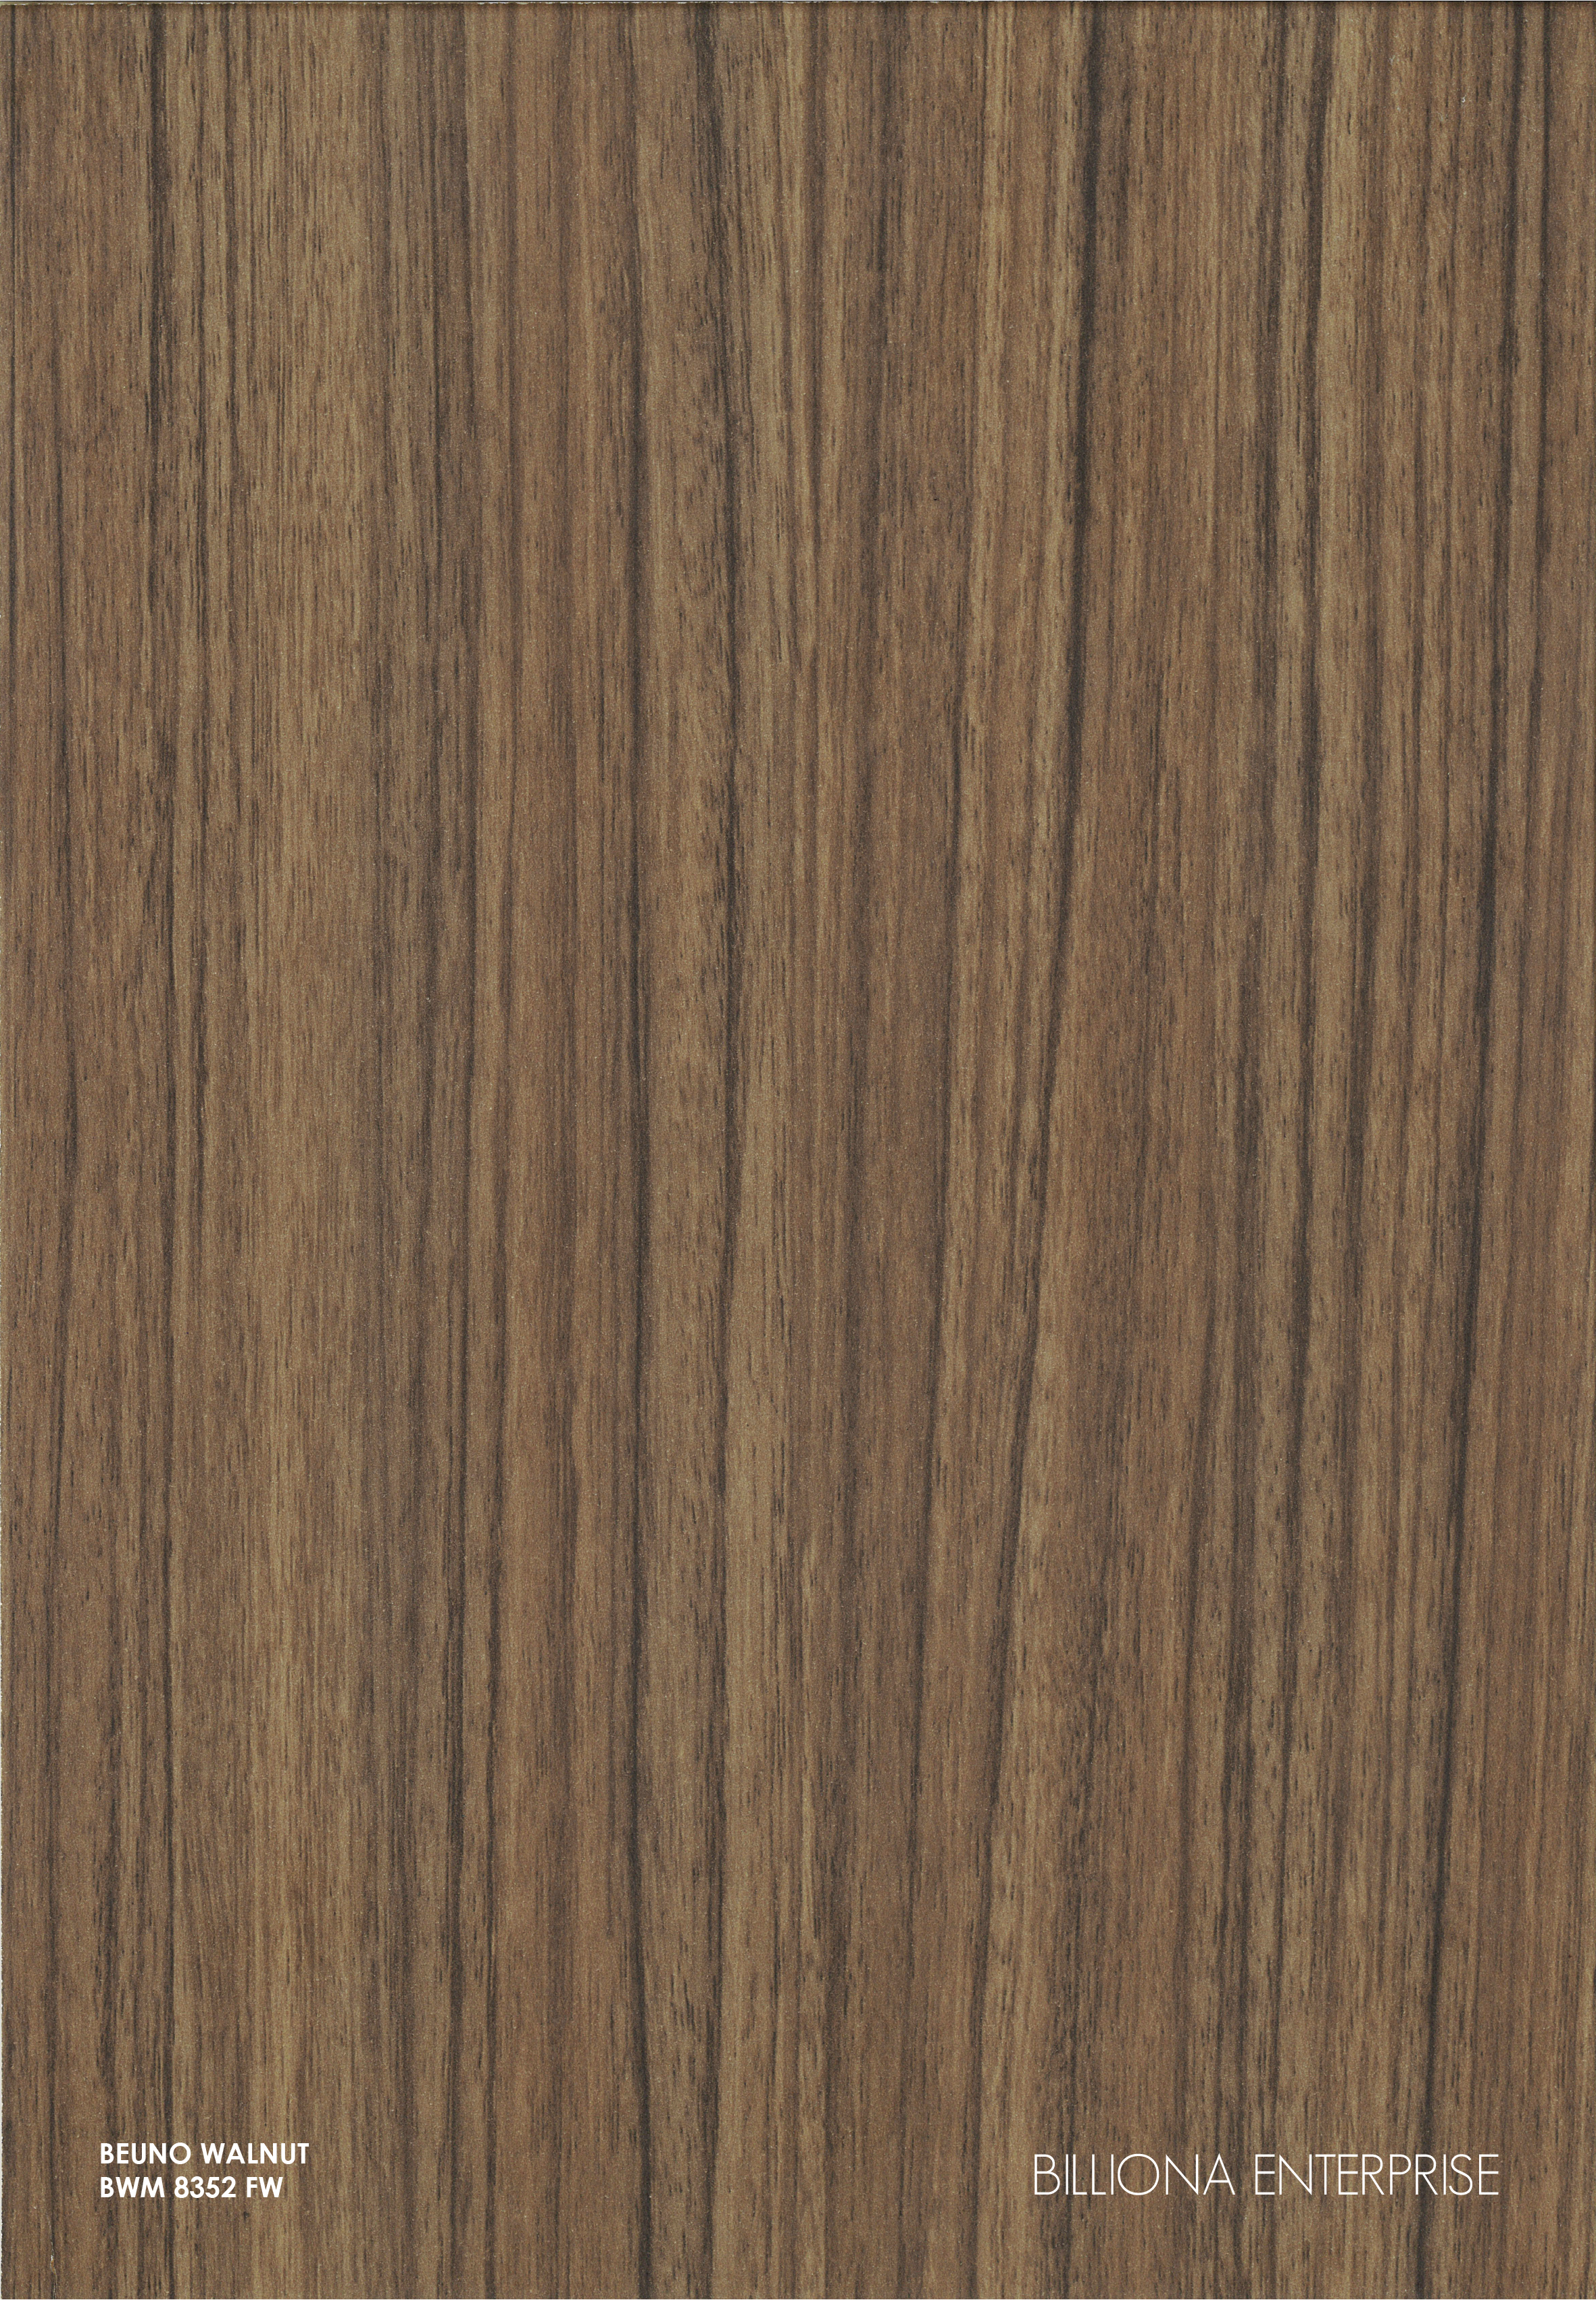 BWM 8352 FW - Beuno Walnut High Pressure Laminate (HPL), Billiona Enterprise Singapore